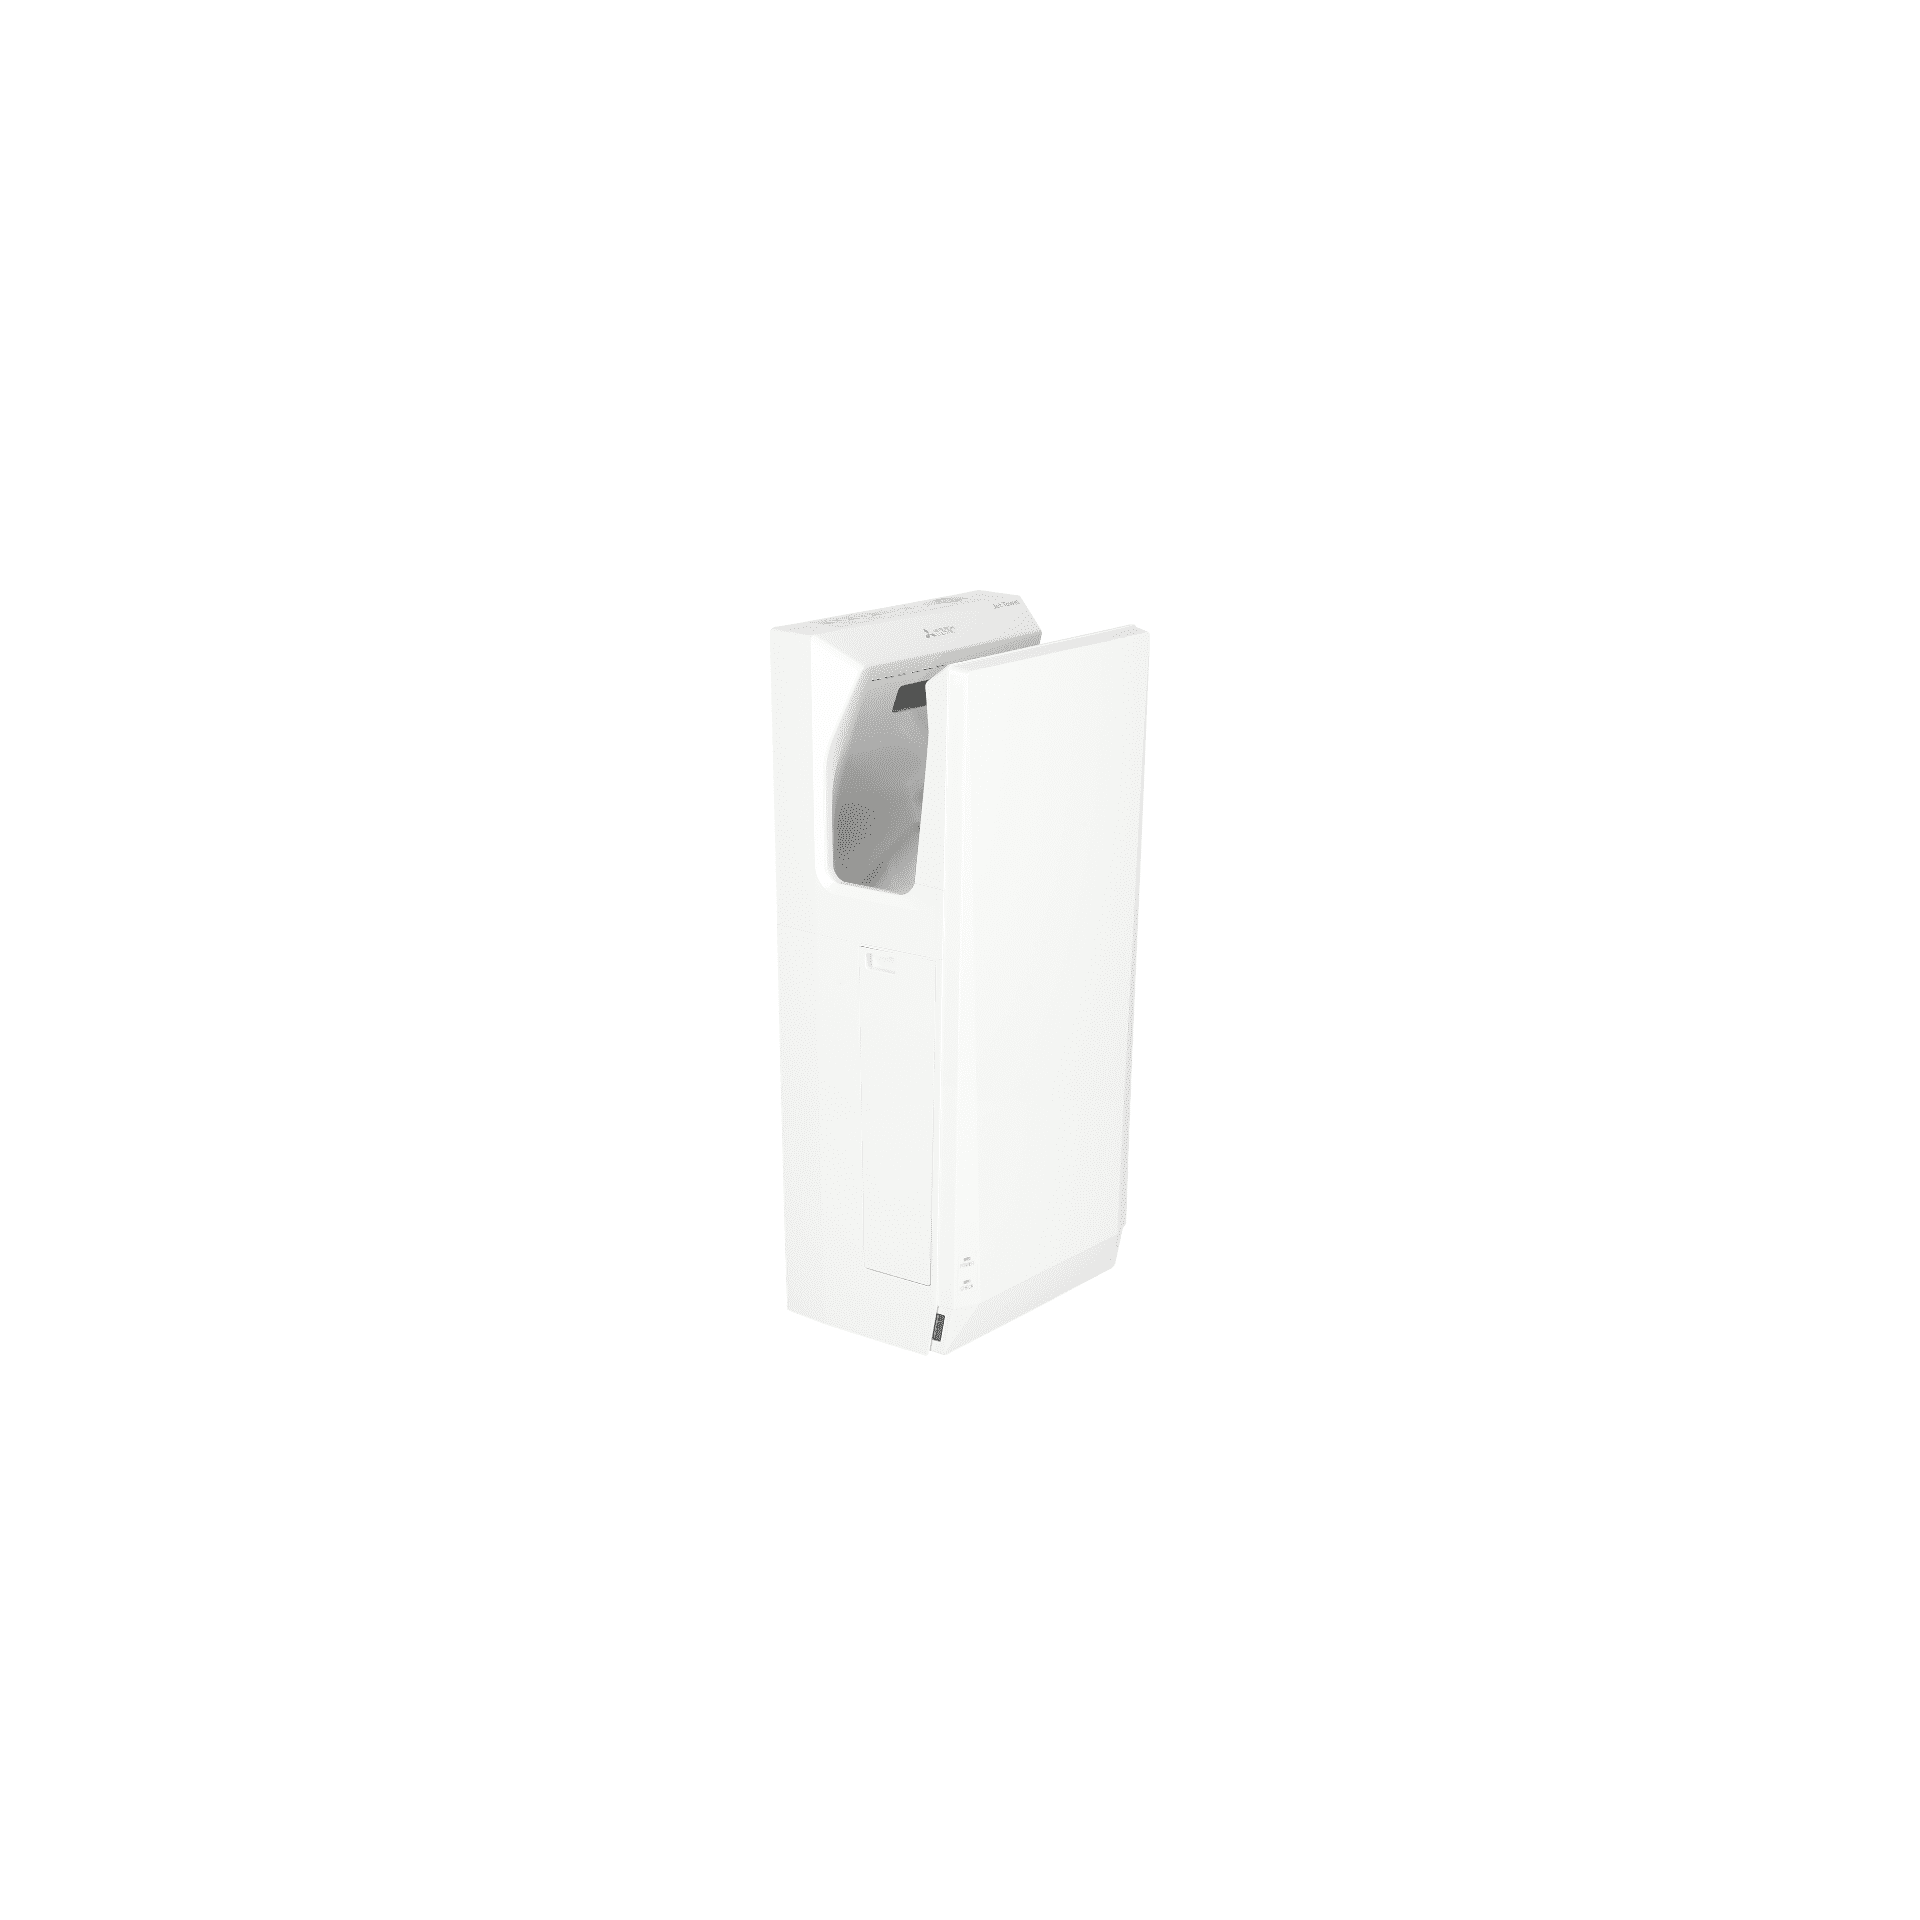 dryers airblade slim in jet all towel dryer hand mitsubishi hands air supplies heated